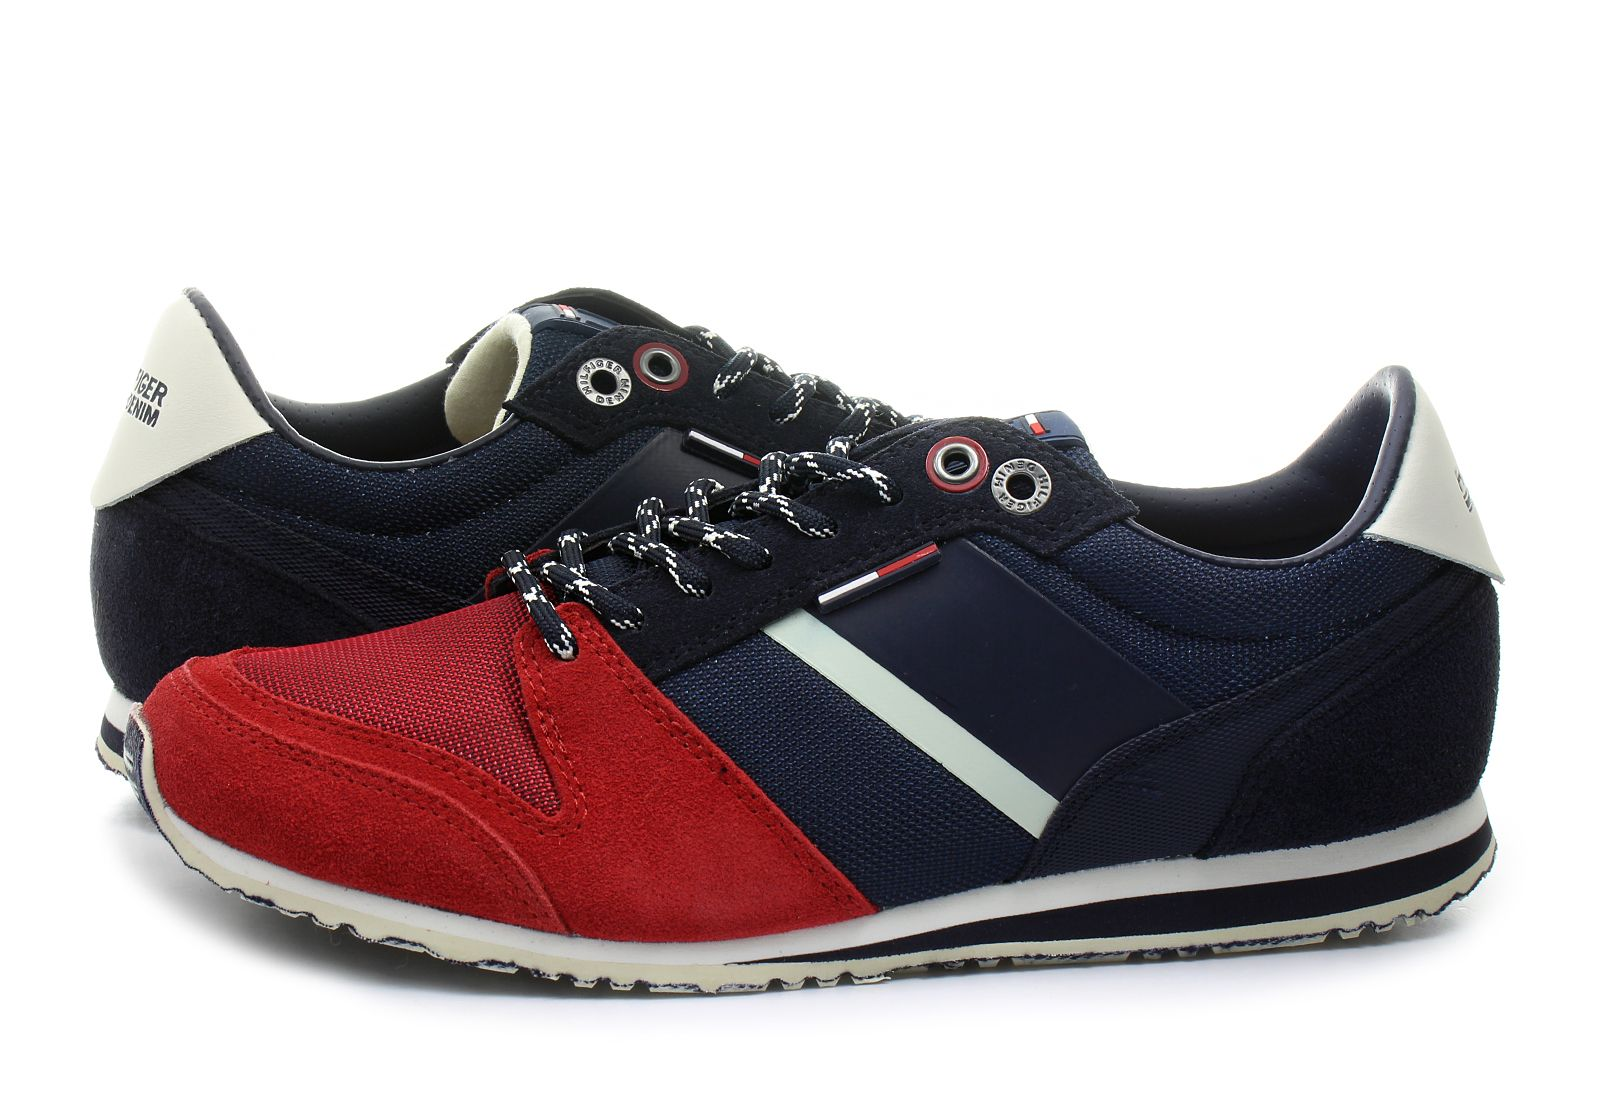 tommy hilfiger shoes sprint 2c2 17s 0457 020 online shop for sneakers shoes and boots. Black Bedroom Furniture Sets. Home Design Ideas